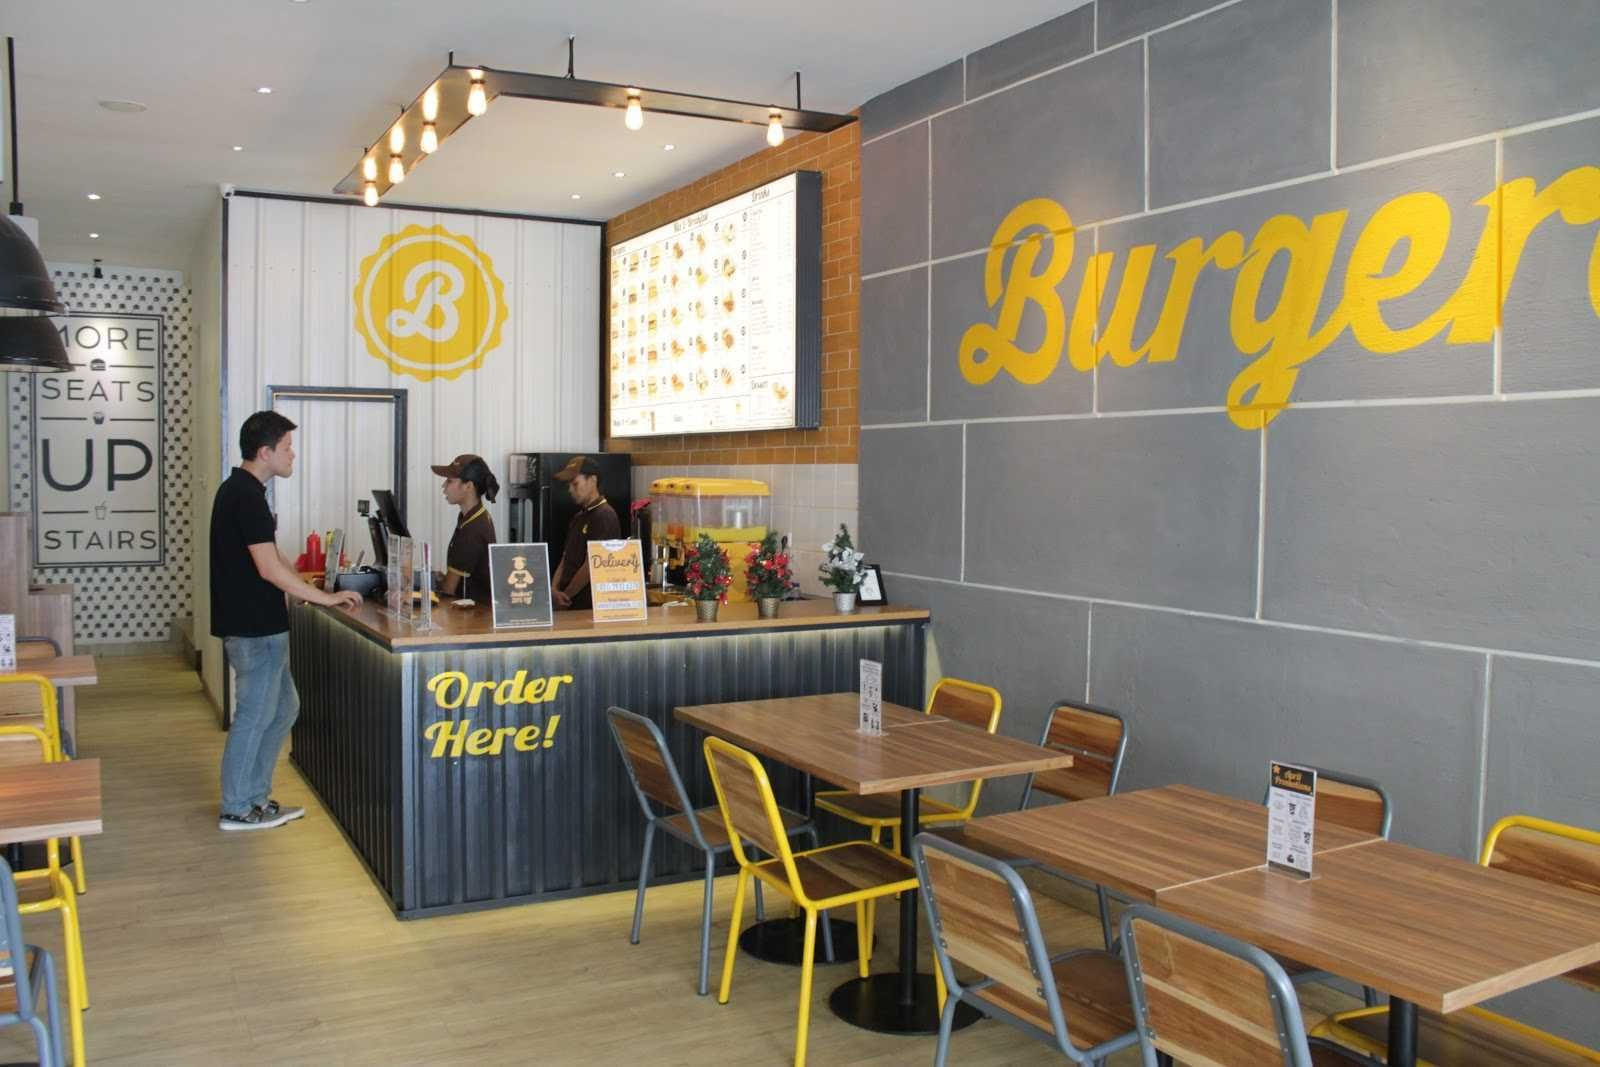 Small Restaurant Design Ideas Inspirations Including Charming Fast Food Pictures Restau Small Restaurant Design Restaurant Design Inspiration Restaurant Design